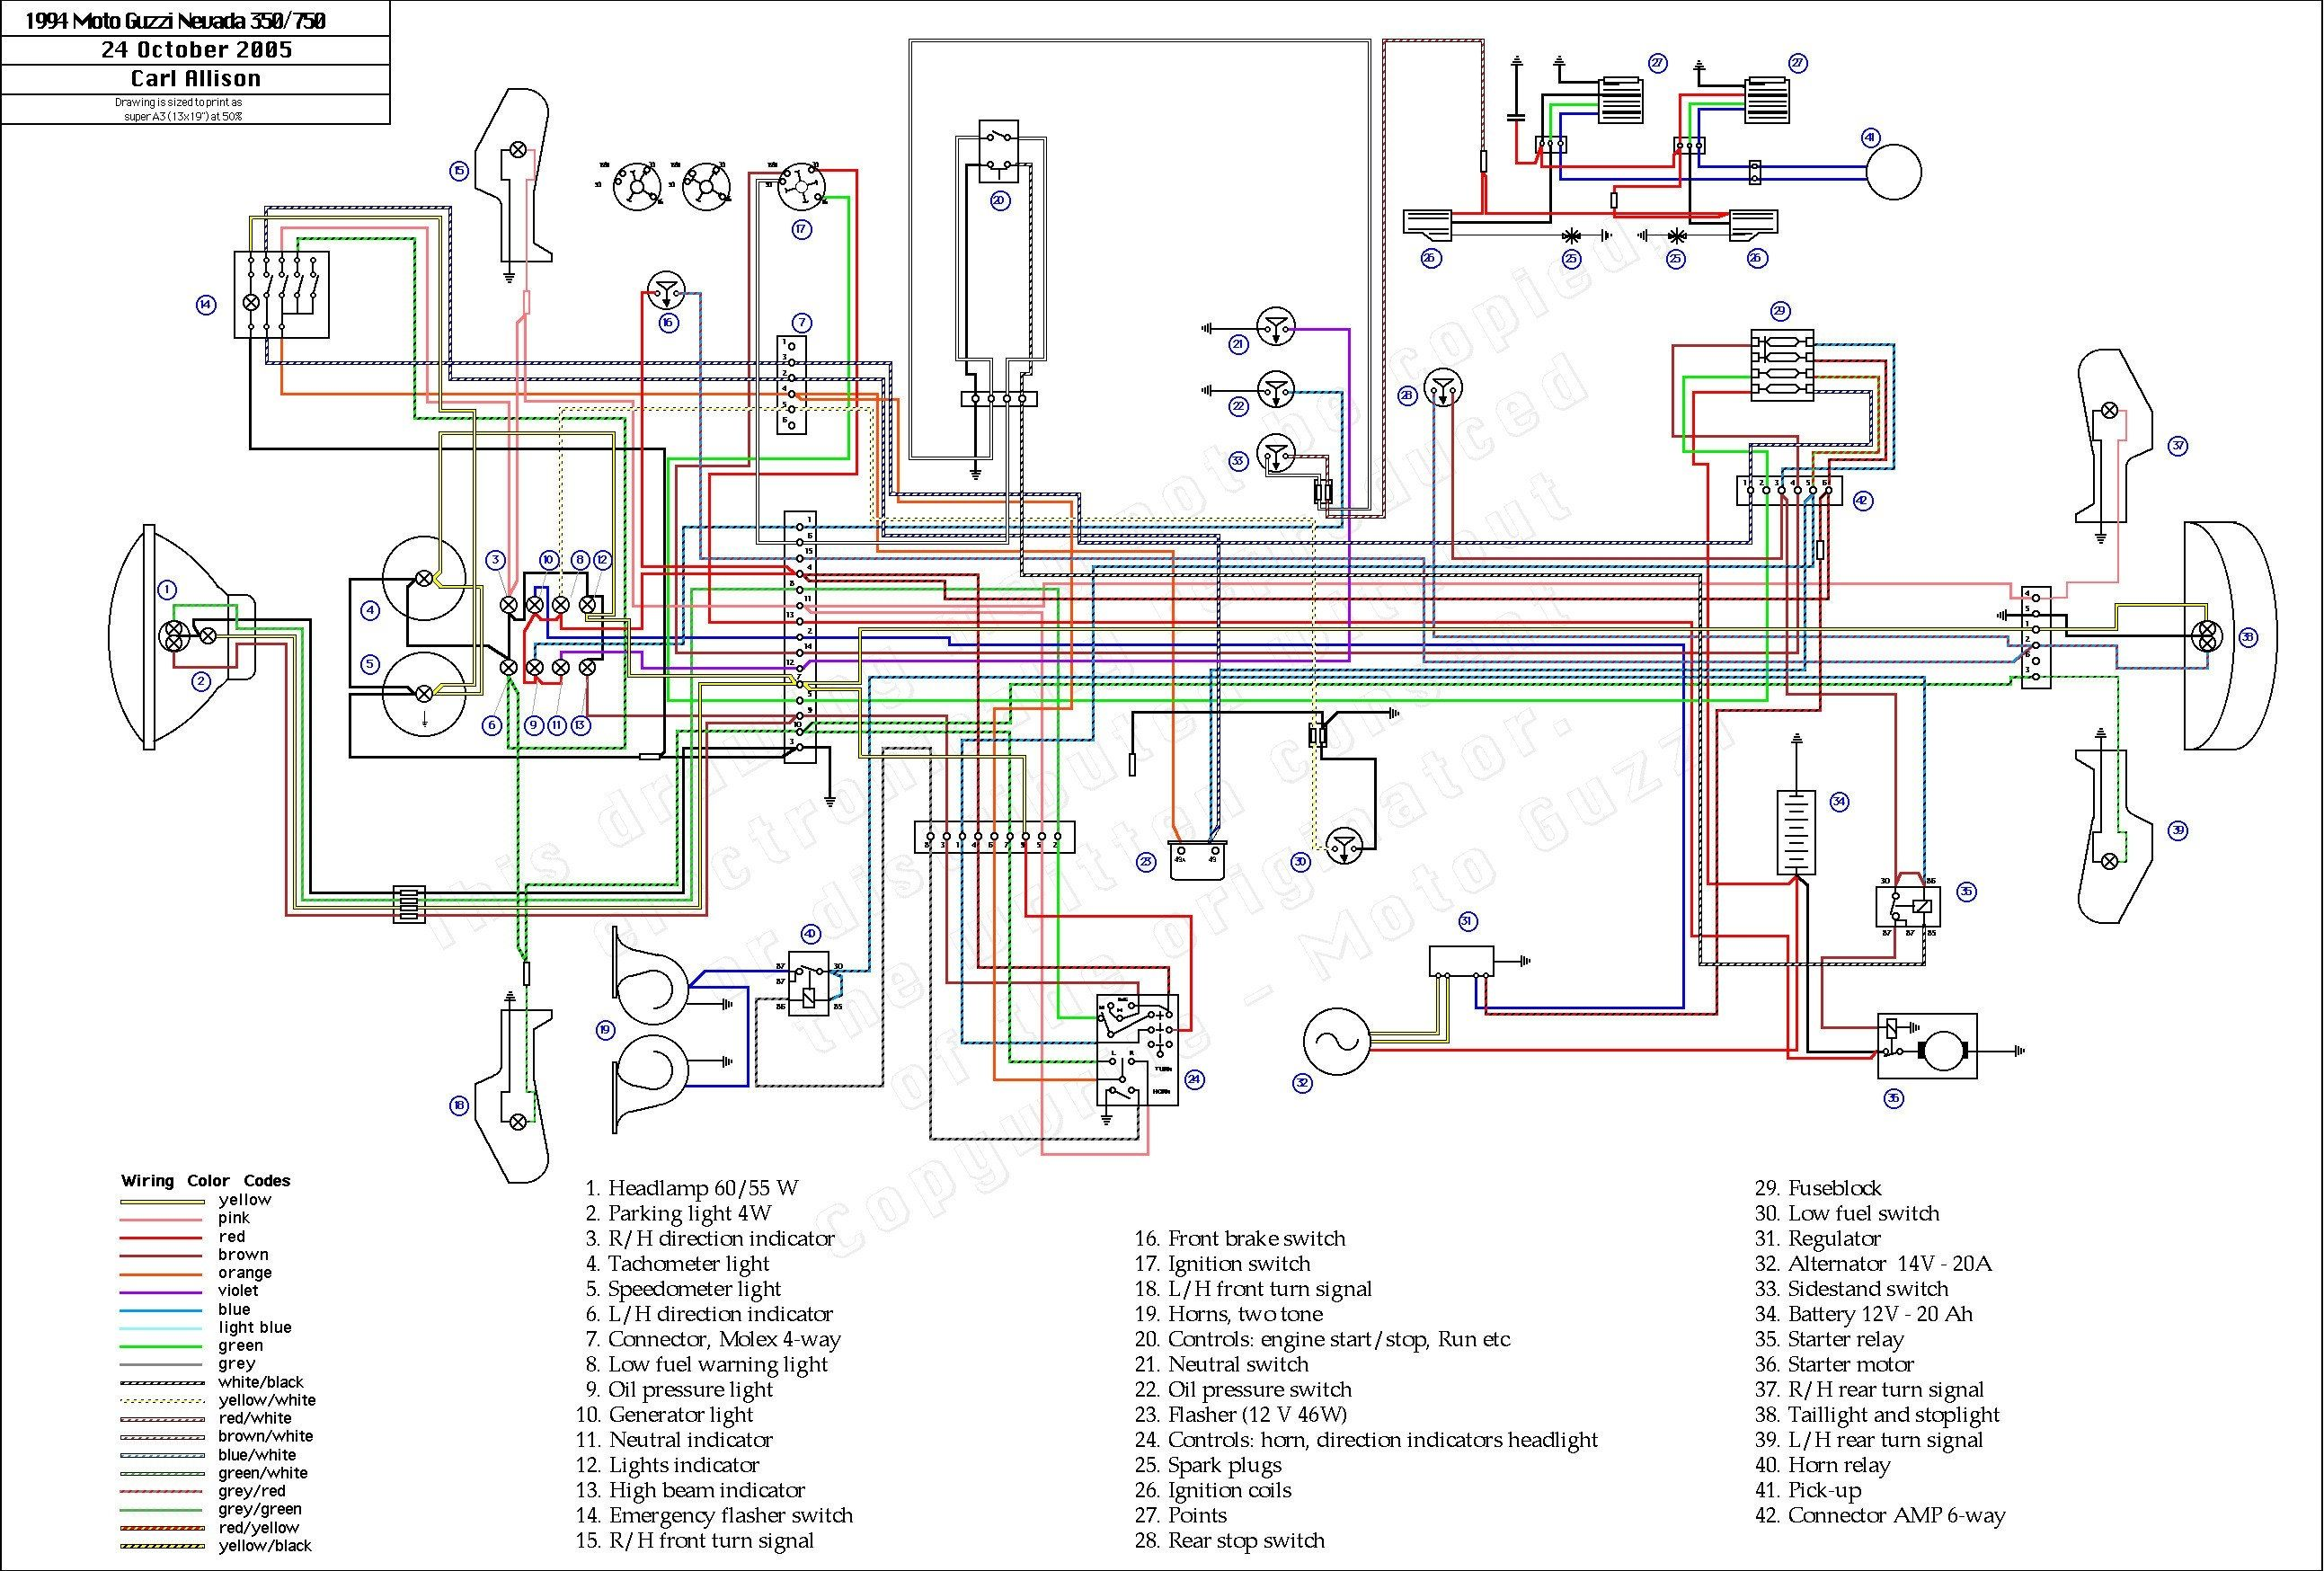 low power amplifier with ic ta7140 circuit schematic Yamaha Wiring Schematic 1887 Exciter